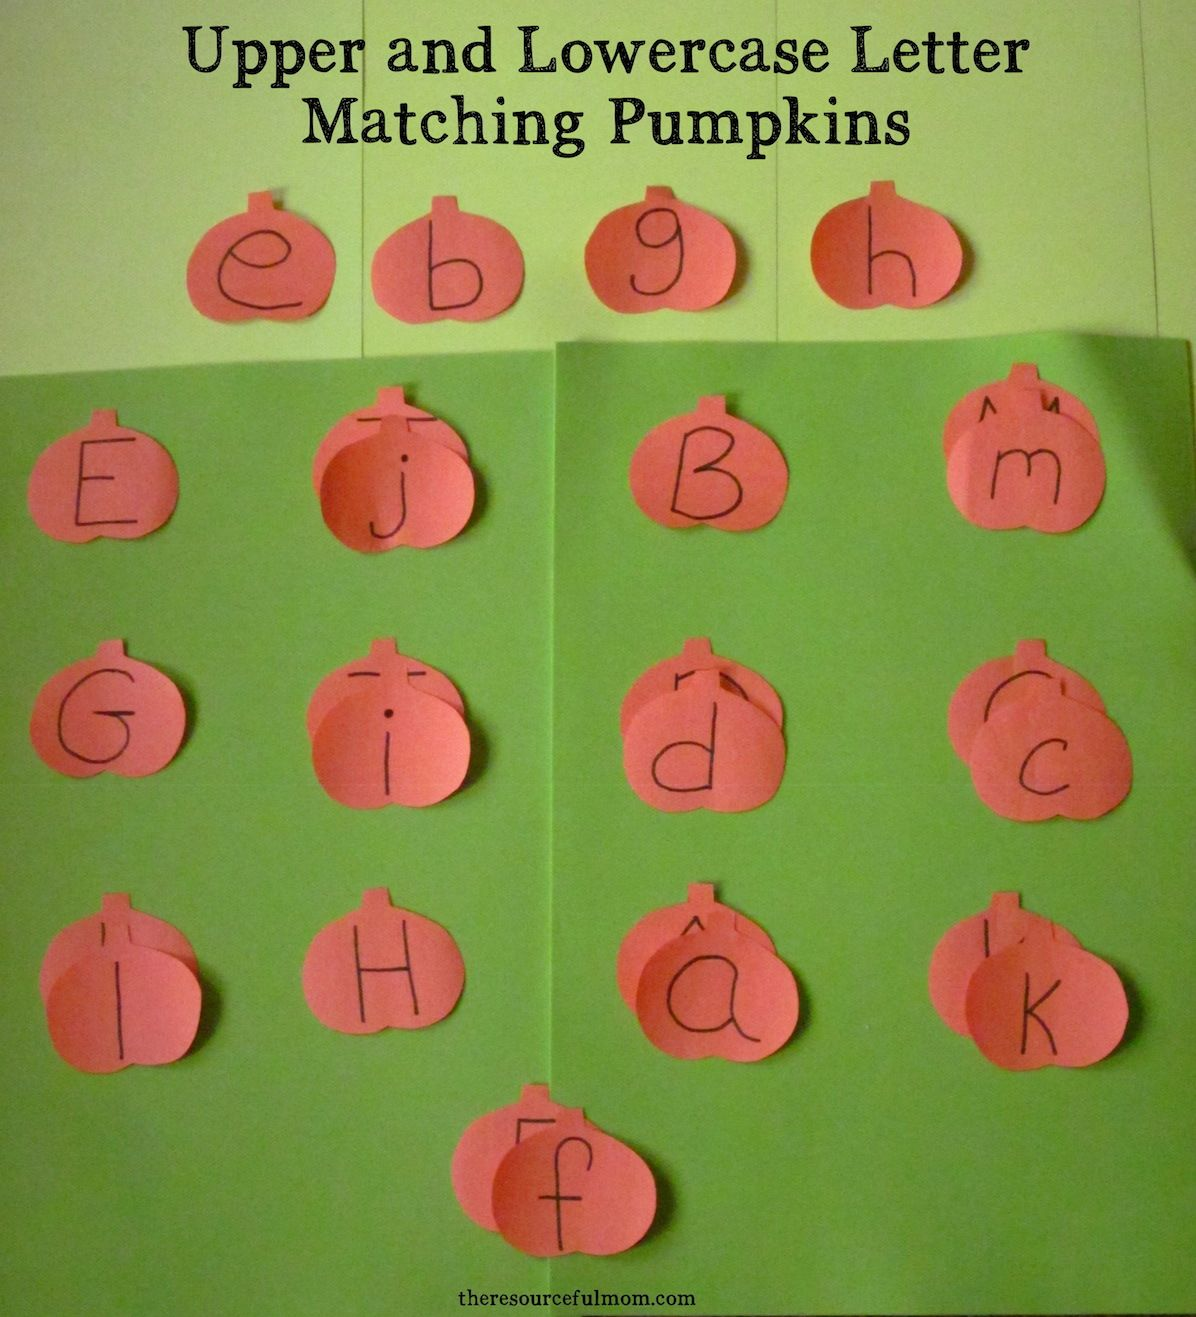 Upper And Lowercase Letter Matching Pumpkins With Images